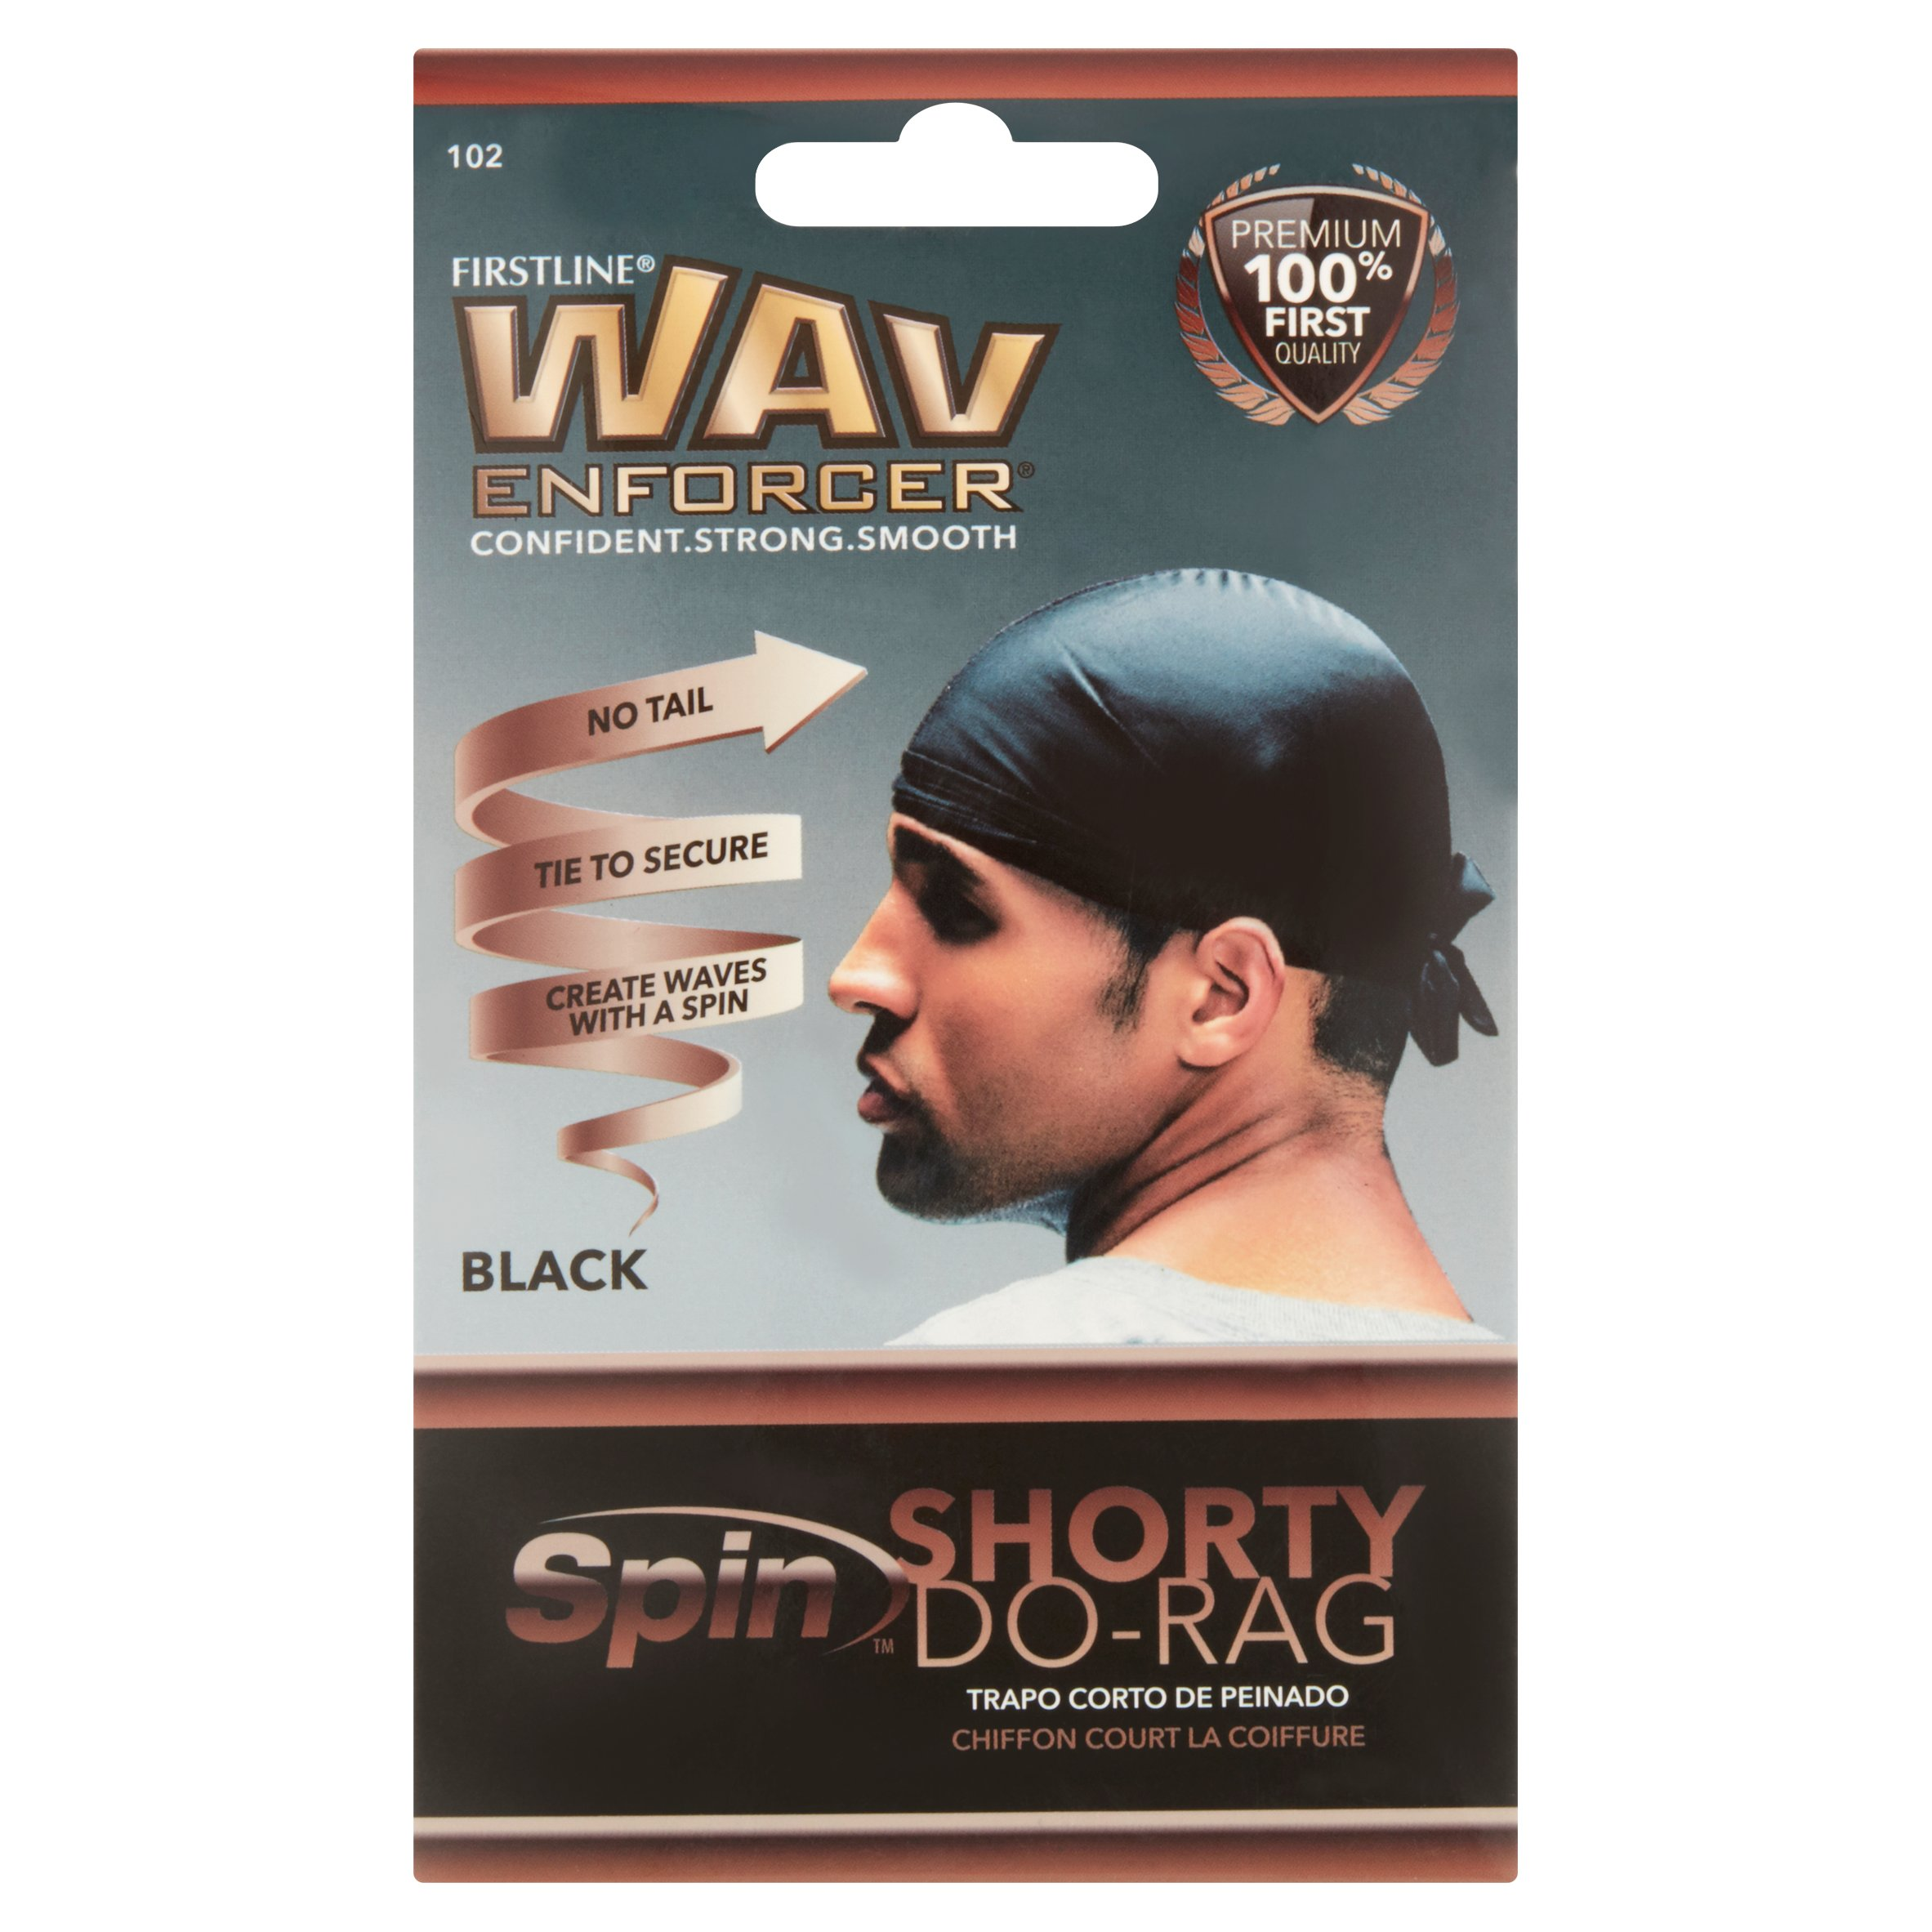 (4 Pack) Wavenforcer Shorty Do-Rag, Black